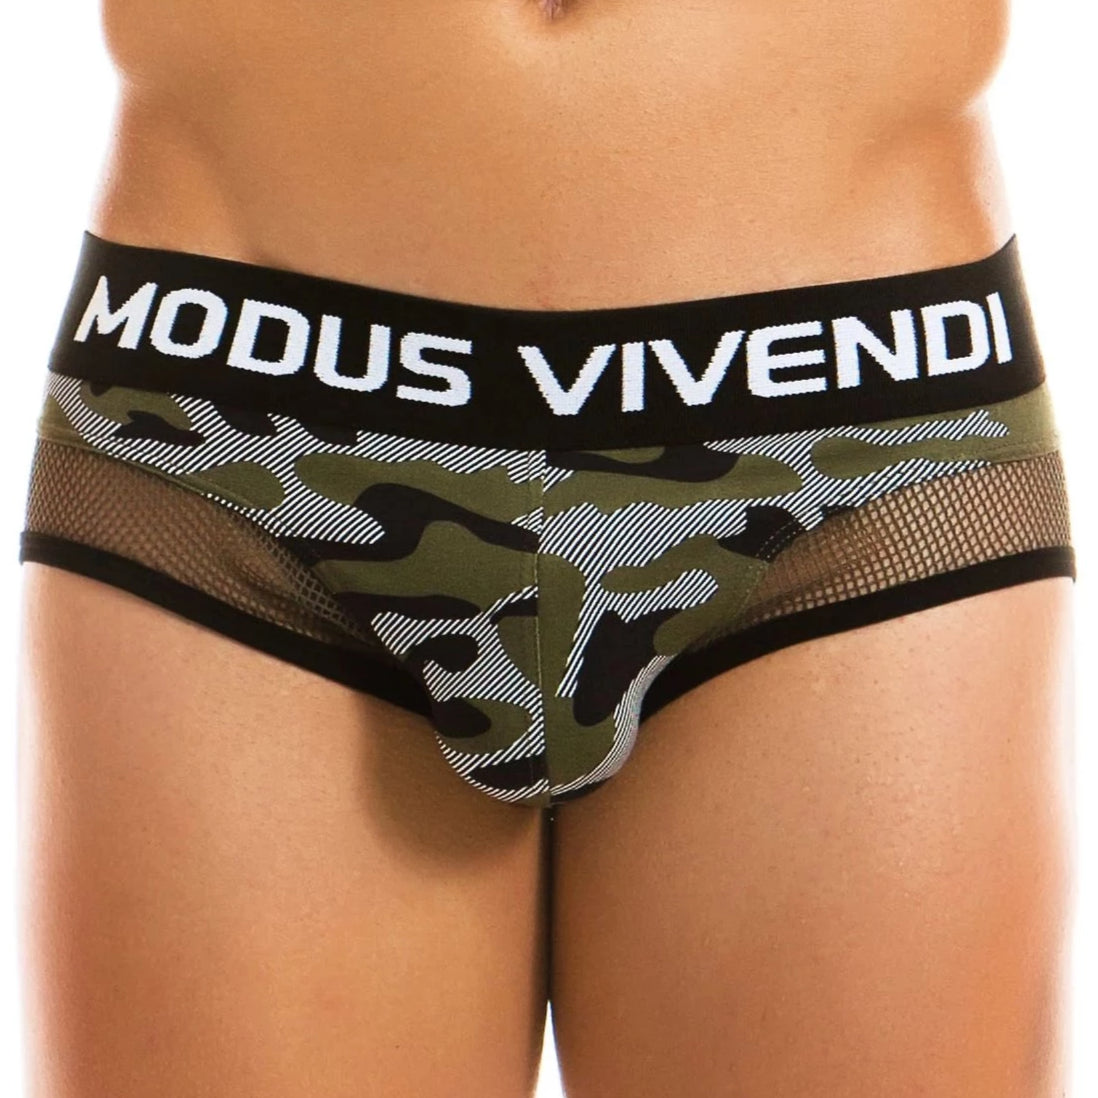 Camo C-Through Brief - Khaki - Modus Vivendi - trender-wear.myshopify.com